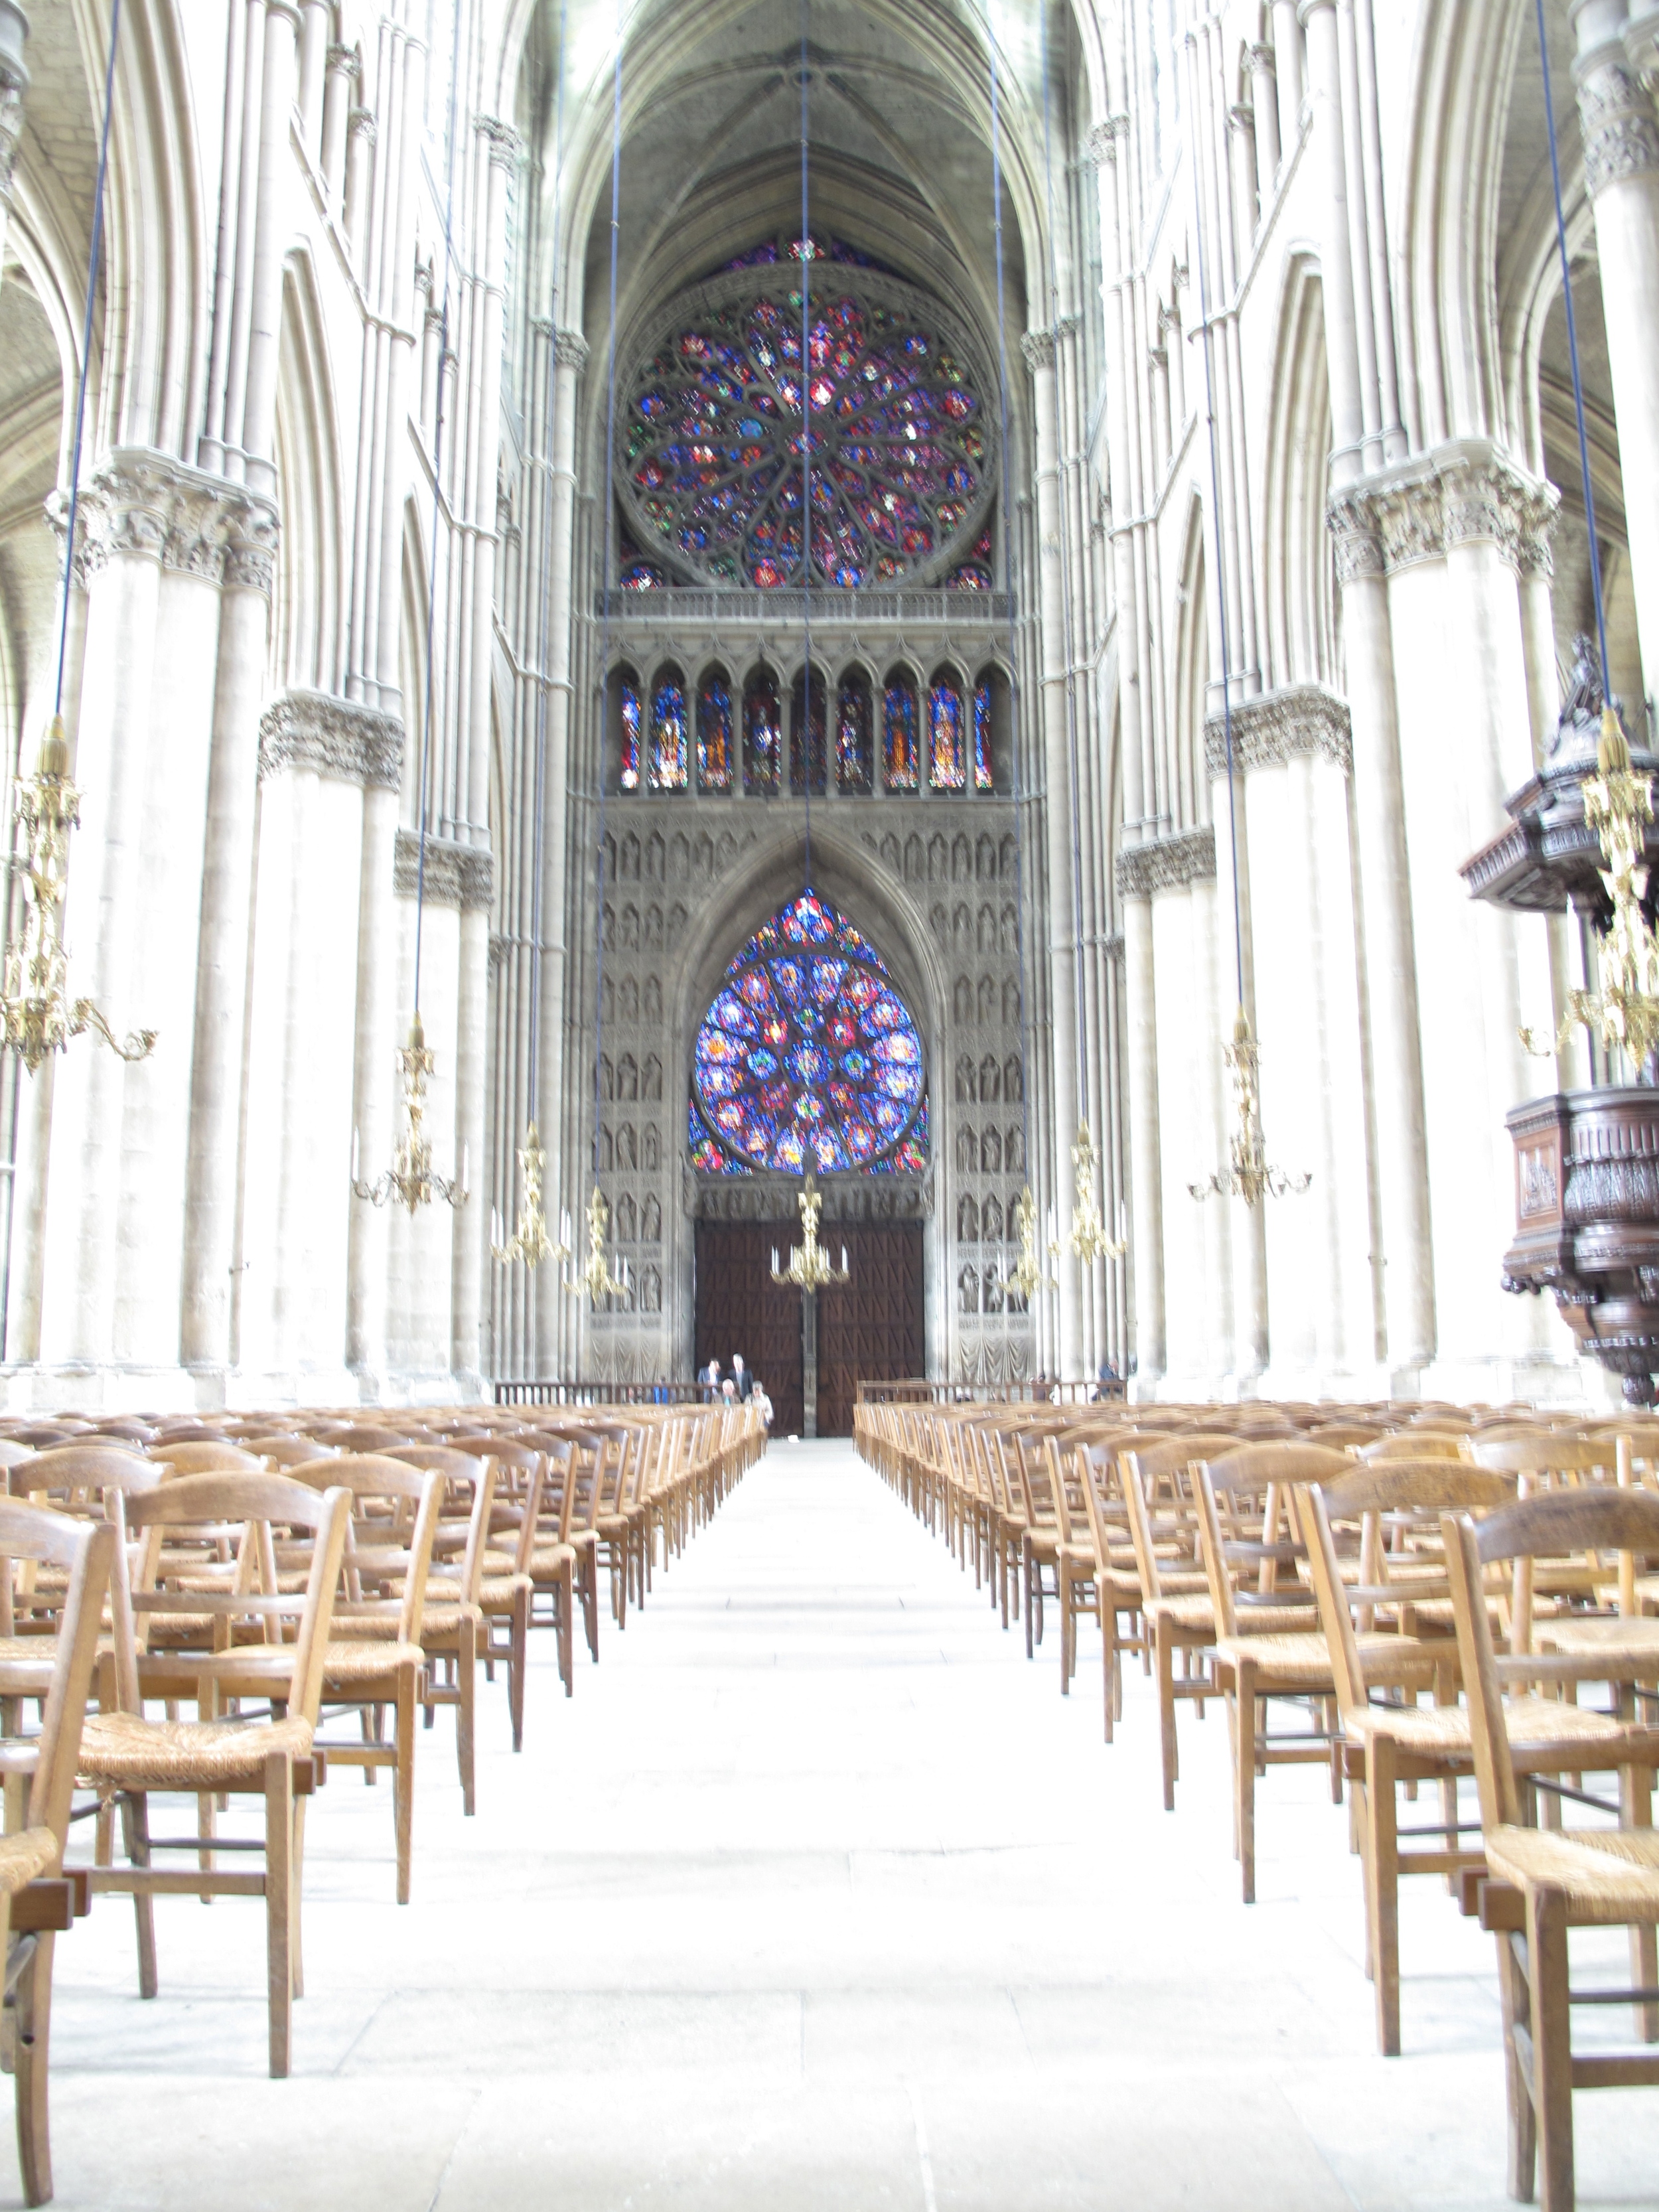 The nave of Reims Cathedral